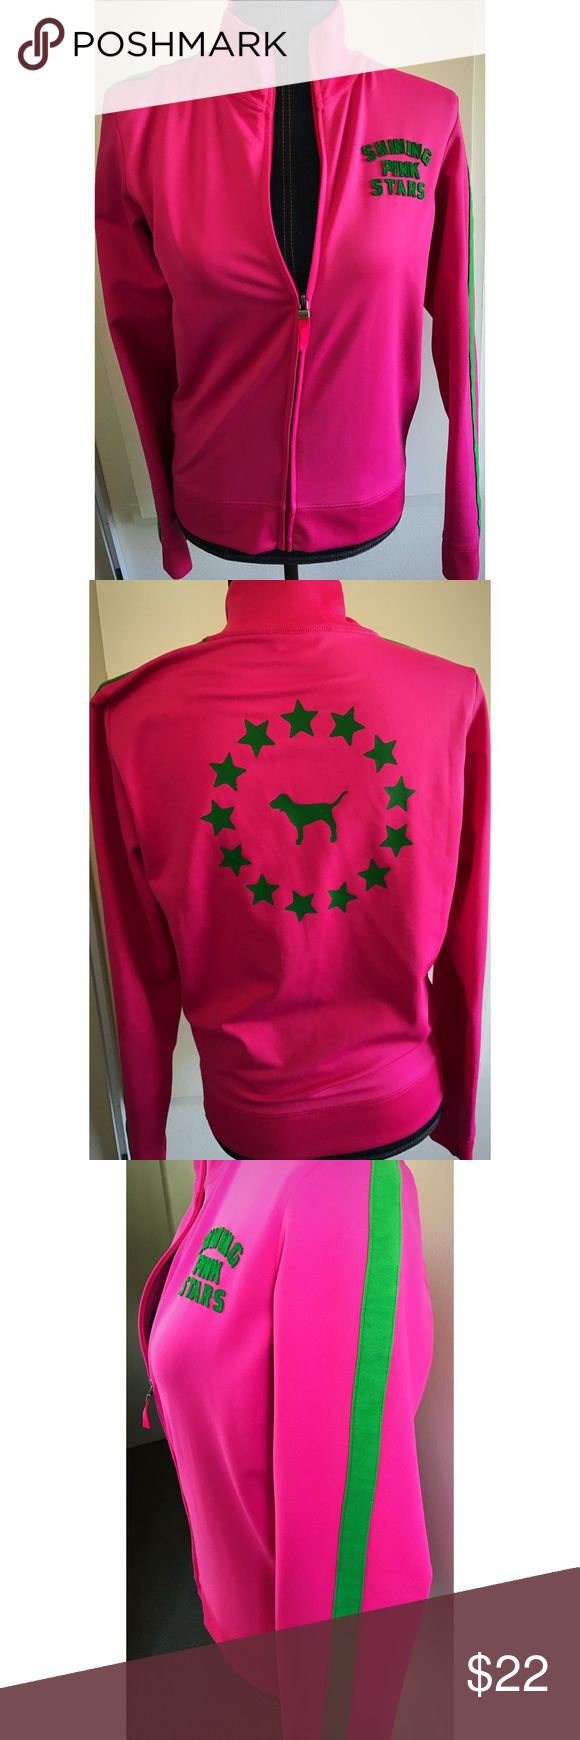 """Victoria secret """"pink"""" letterman sports jacket - M Victoria secret 🎁 """"pink"""" letterman sports jacket 👠 size Medium 👍 worn only once 👢 green Stars and Stripes on jacket 💕 super cozy and cute for working out or a light jacket to have 👋 w/ zipper Victoria's Secret Jackets & Coats Blazers"""